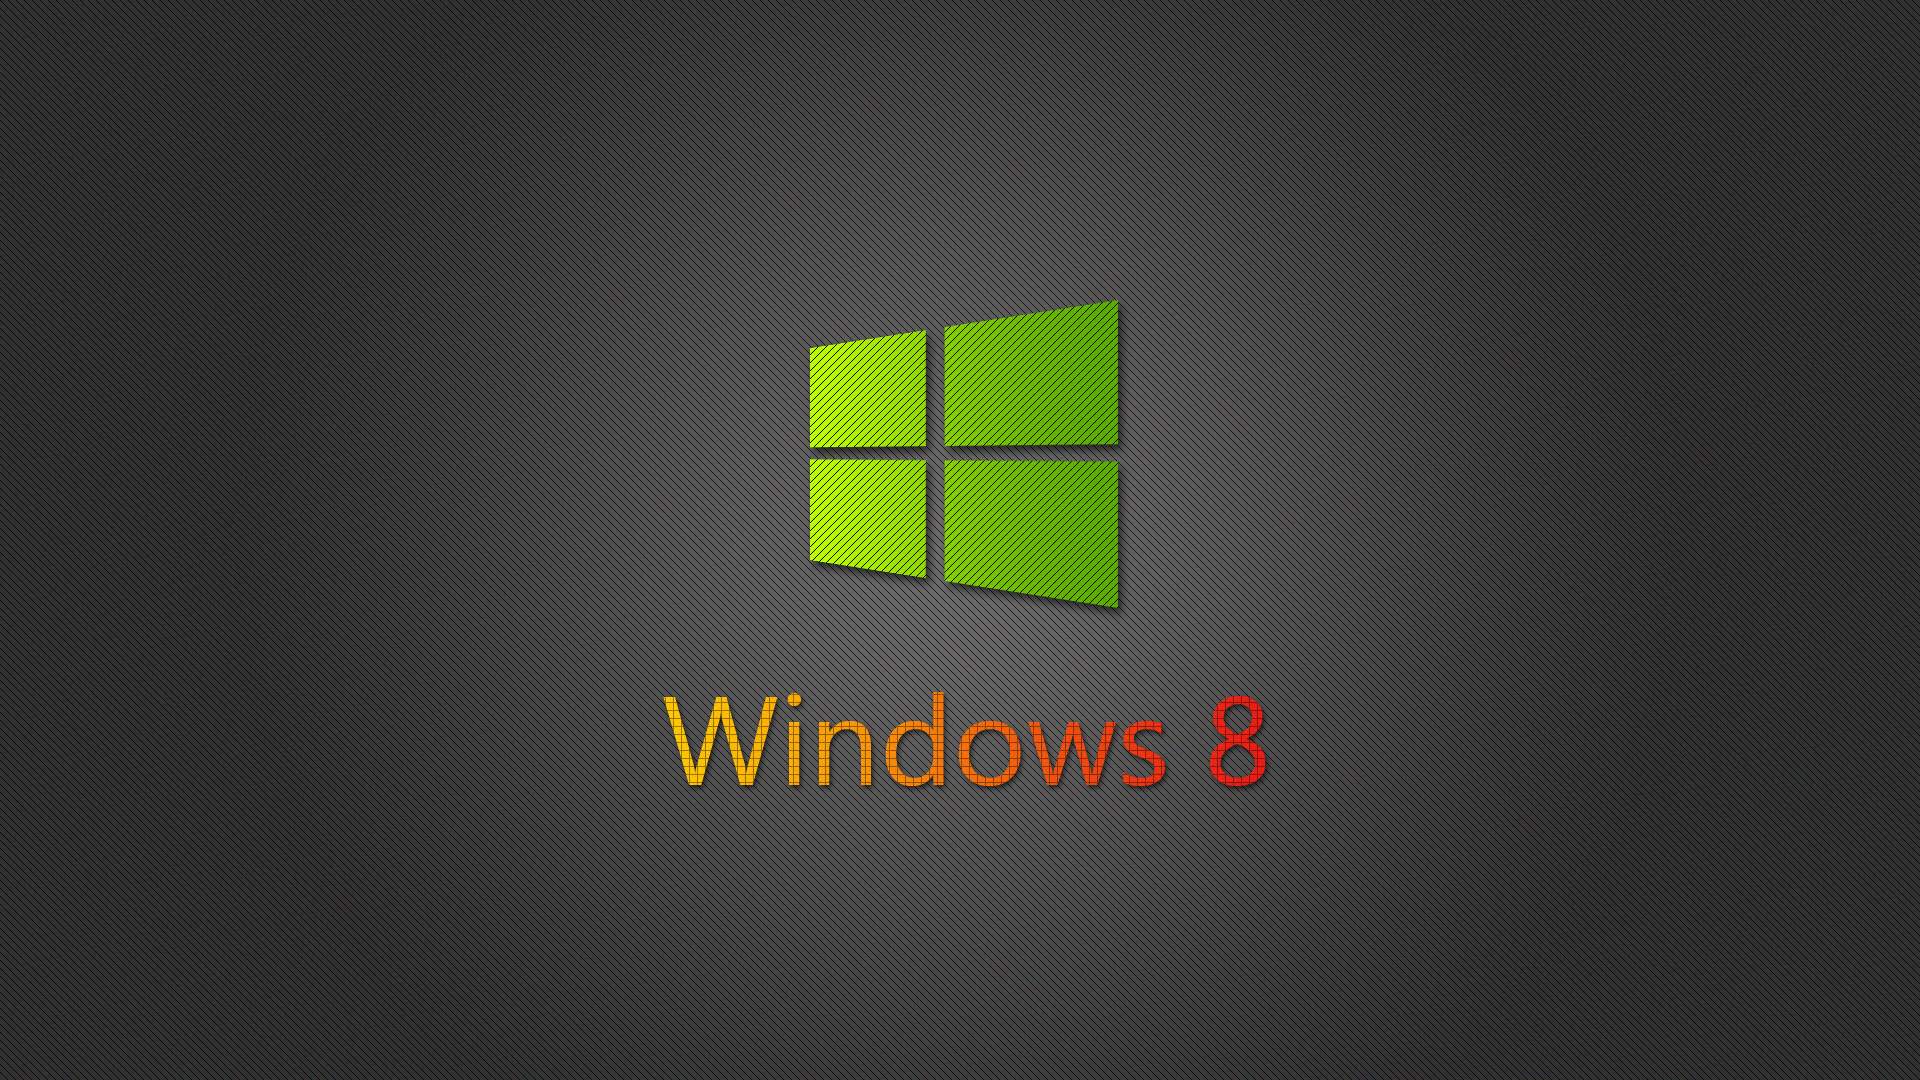 Download these 44 hd windows 8 wallpaper images for Window background